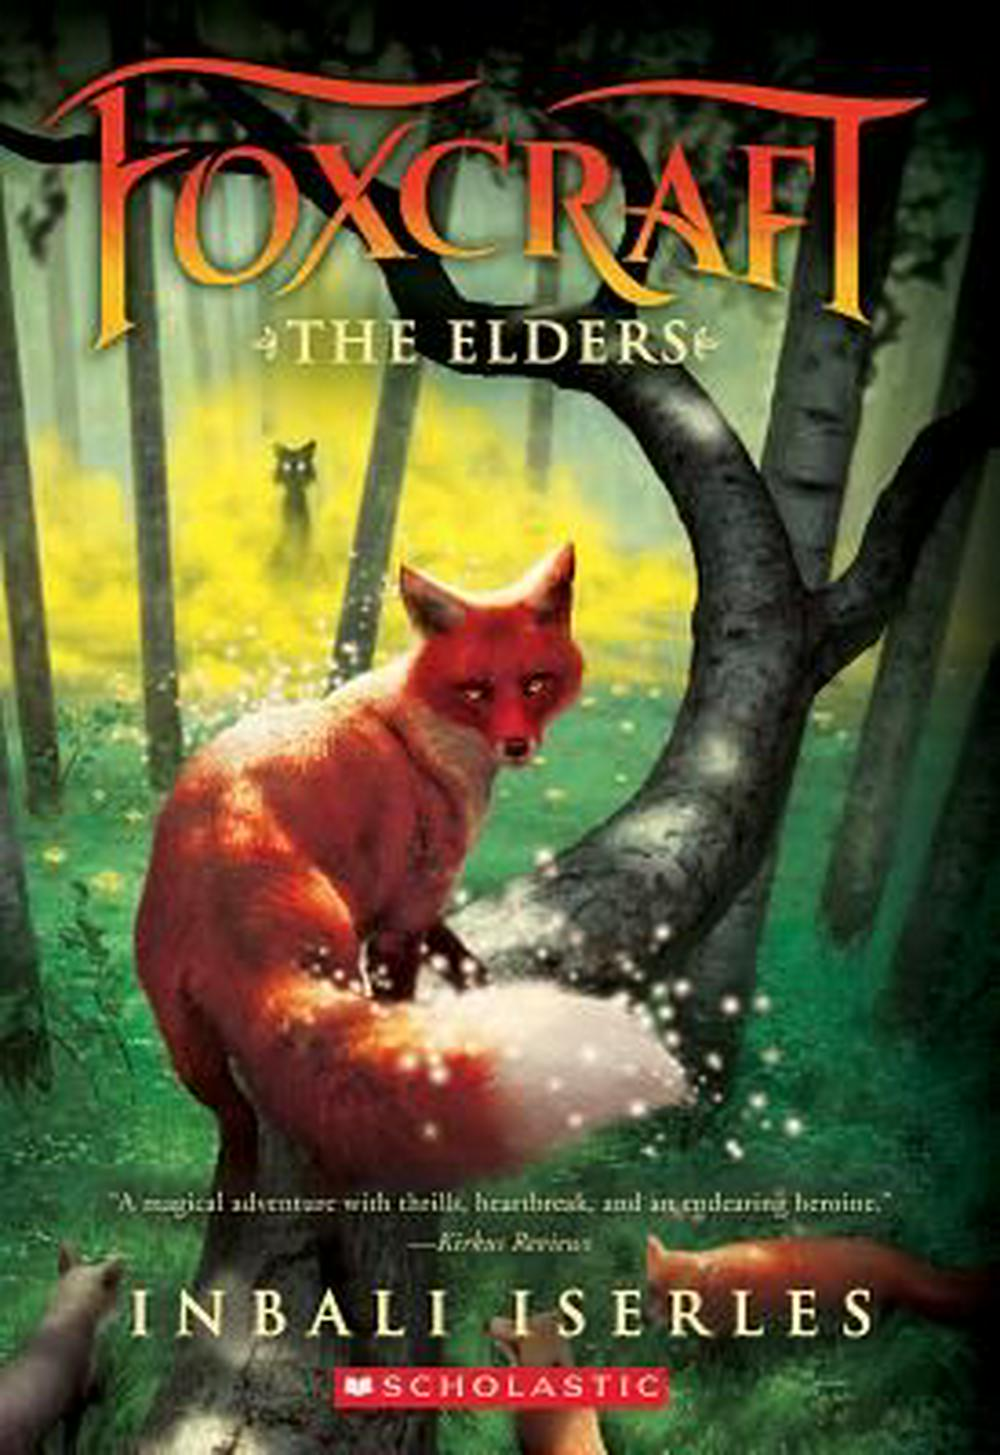 The Elders (Foxcraft, Book 2) by Inbali Iserles, ISBN: 9780545690850